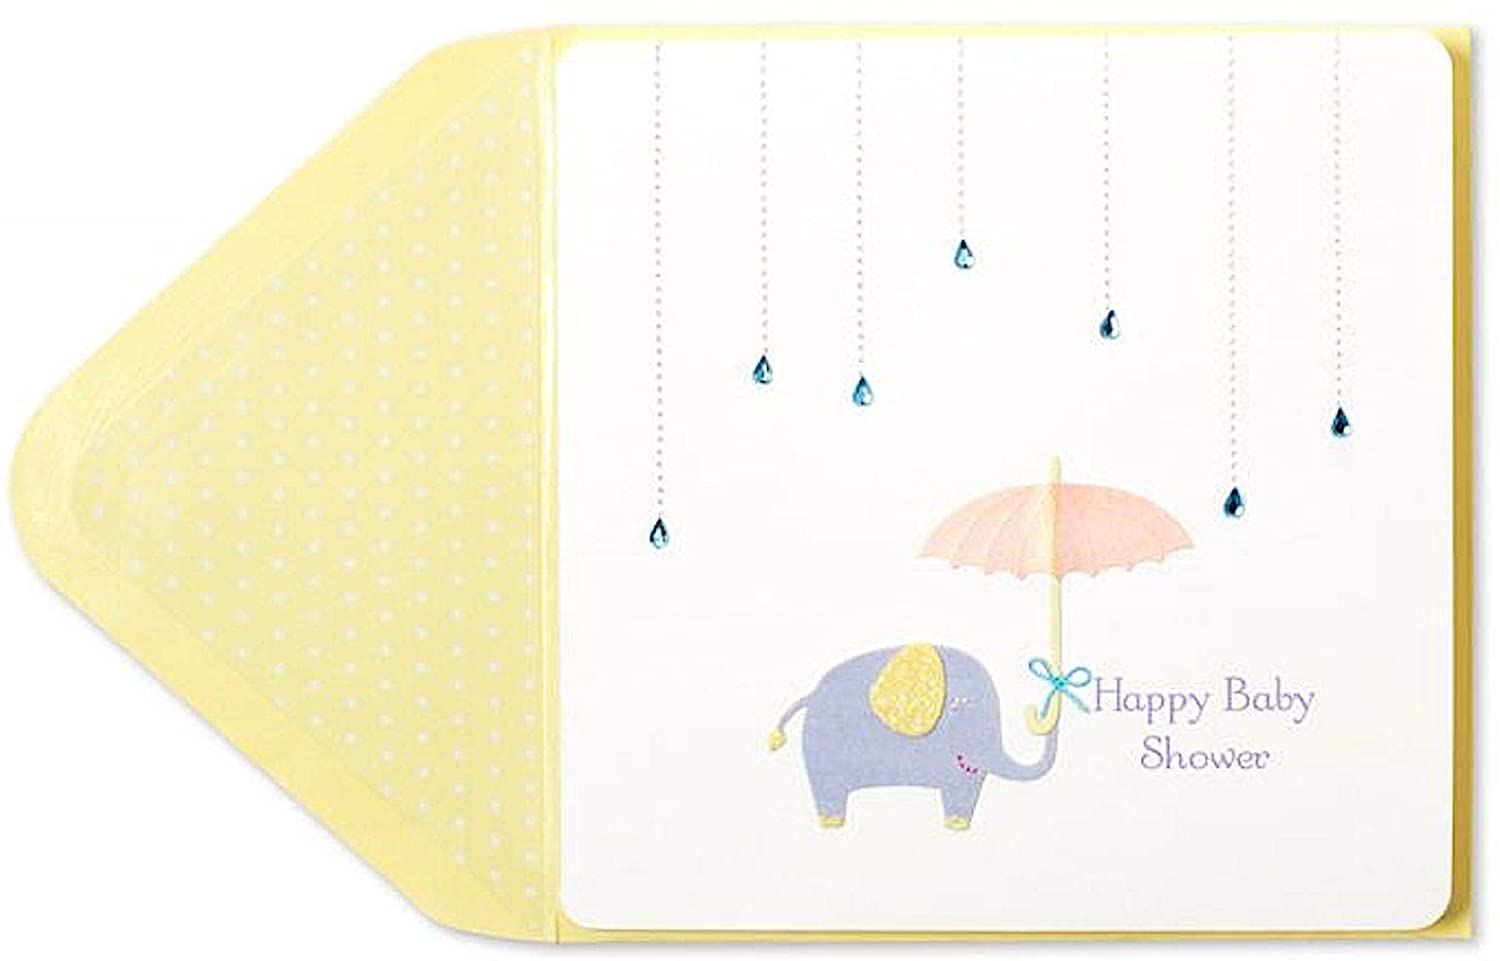 Papyrus Elephant and Umbrella Happy Baby Shower Card